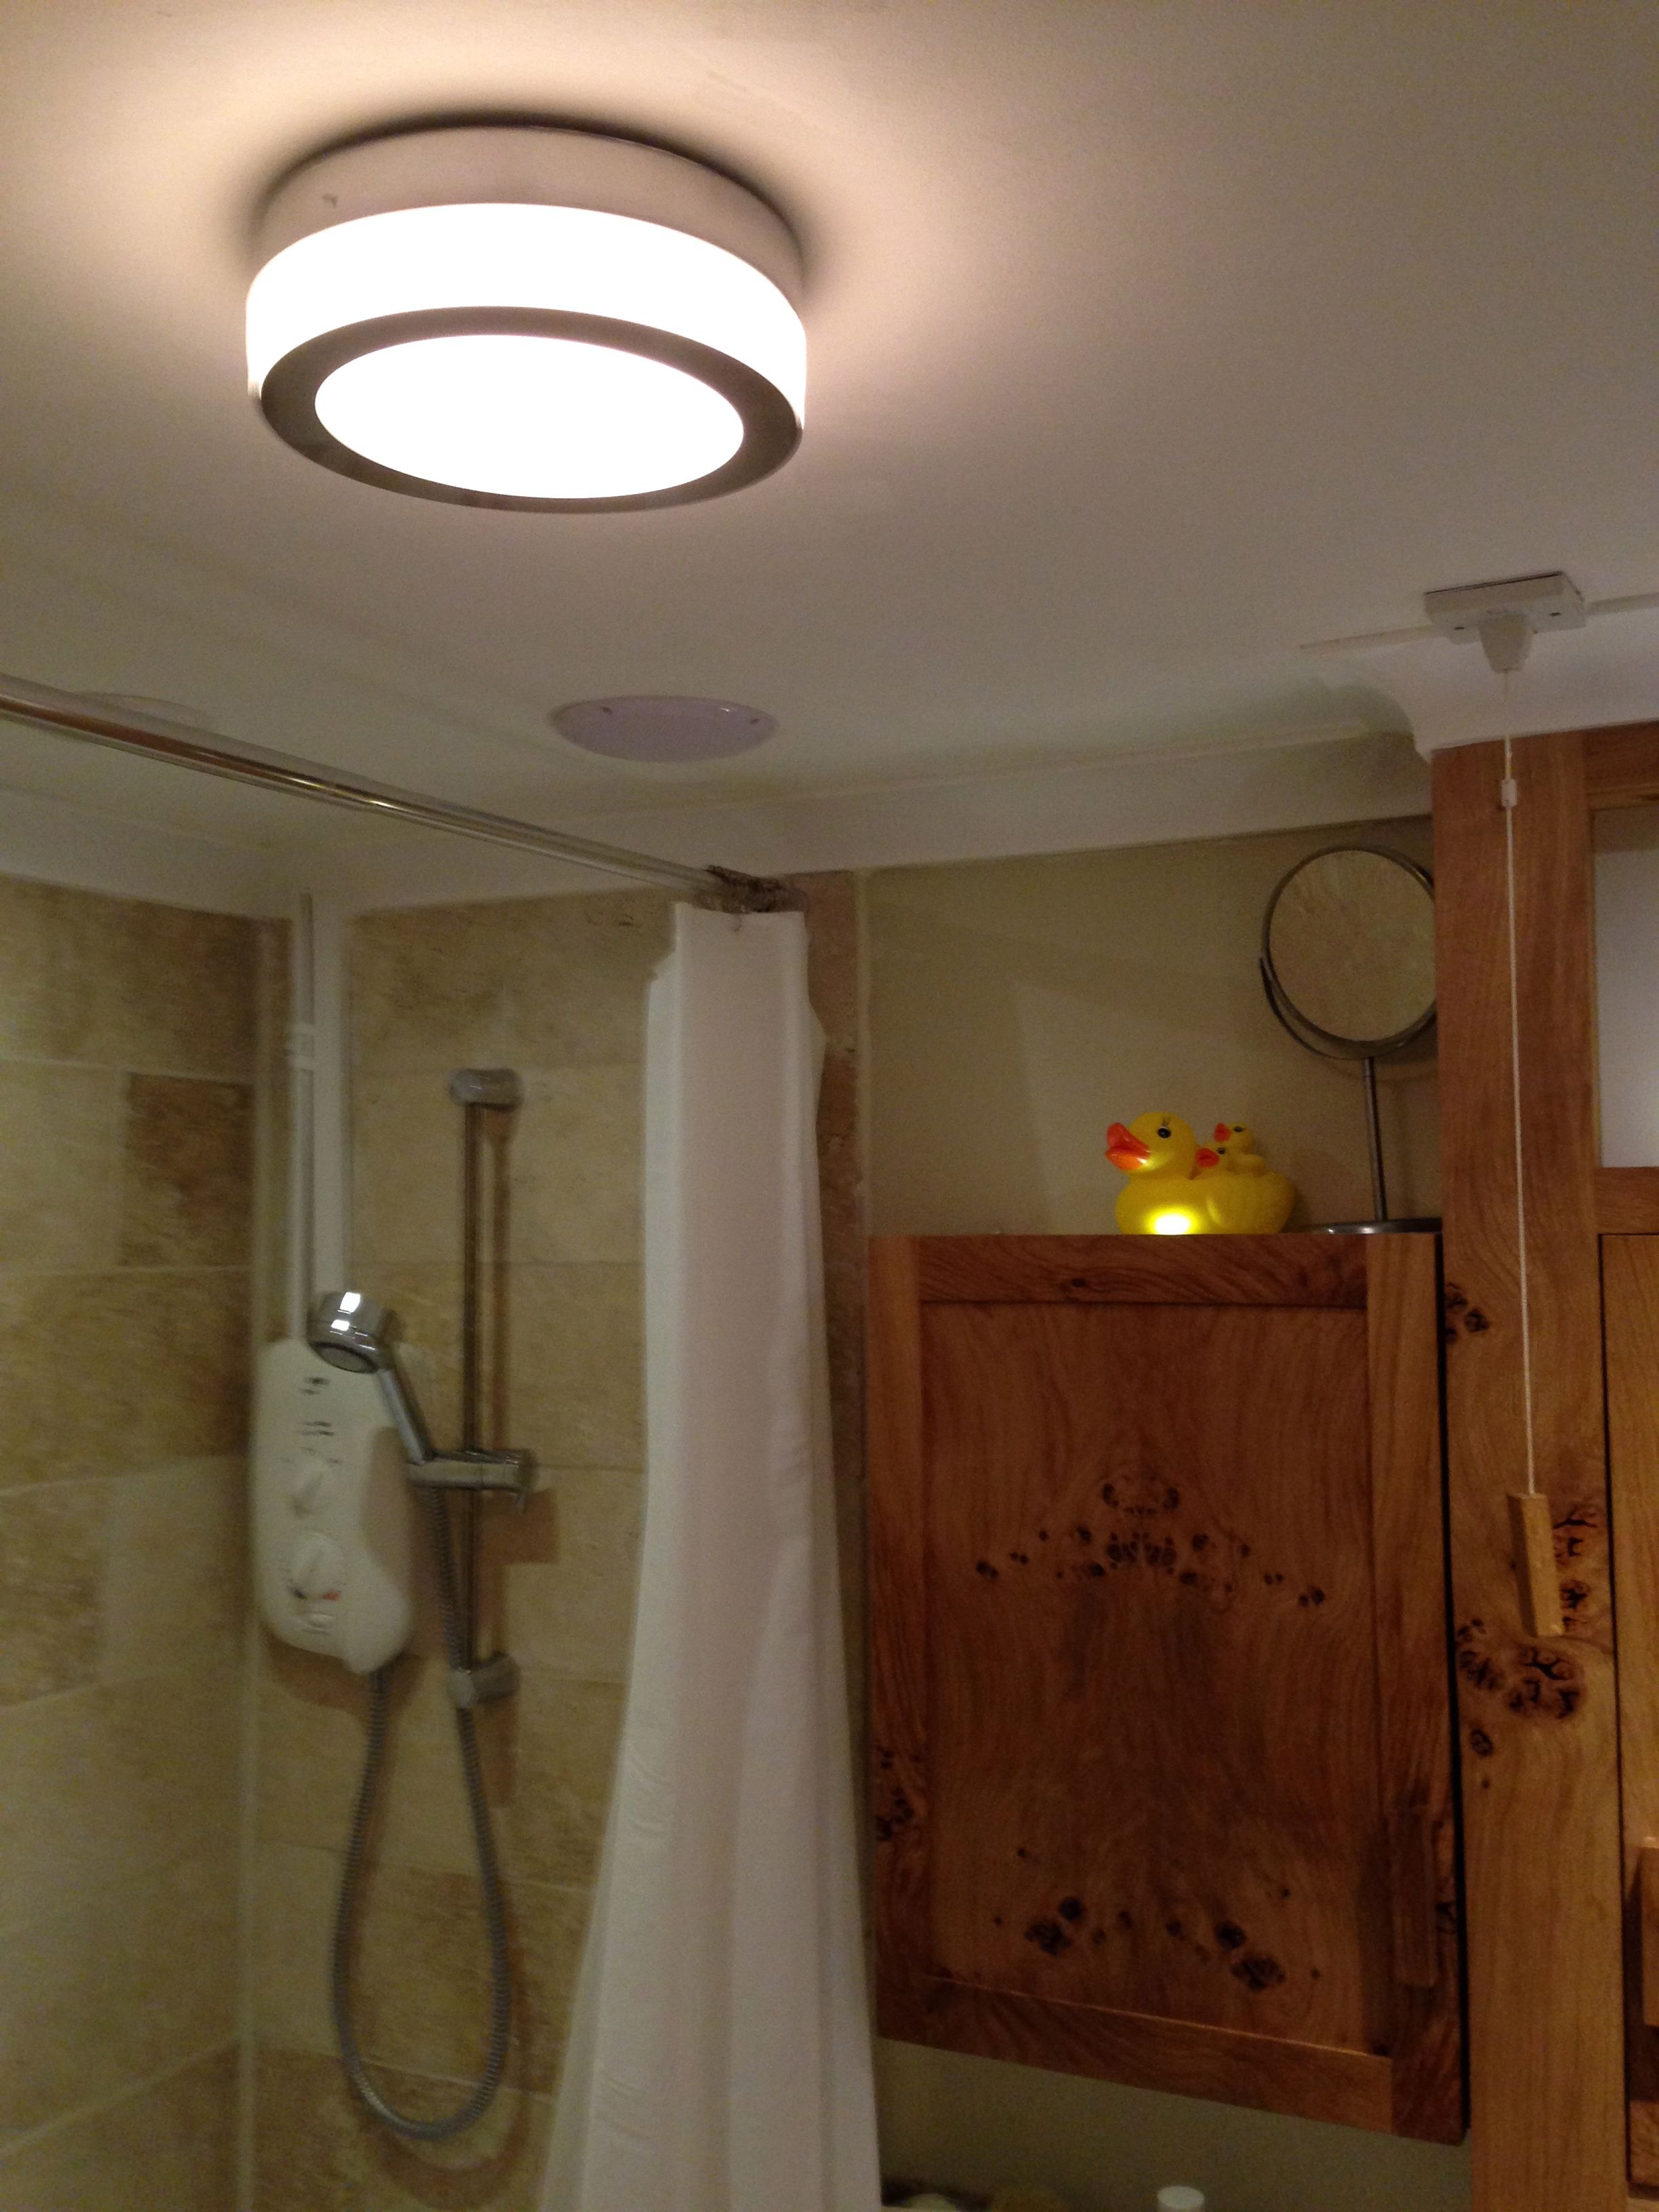 Bathroom Central Ceiling Light Fitting Speakers Coving And Travertine Tiled Walls